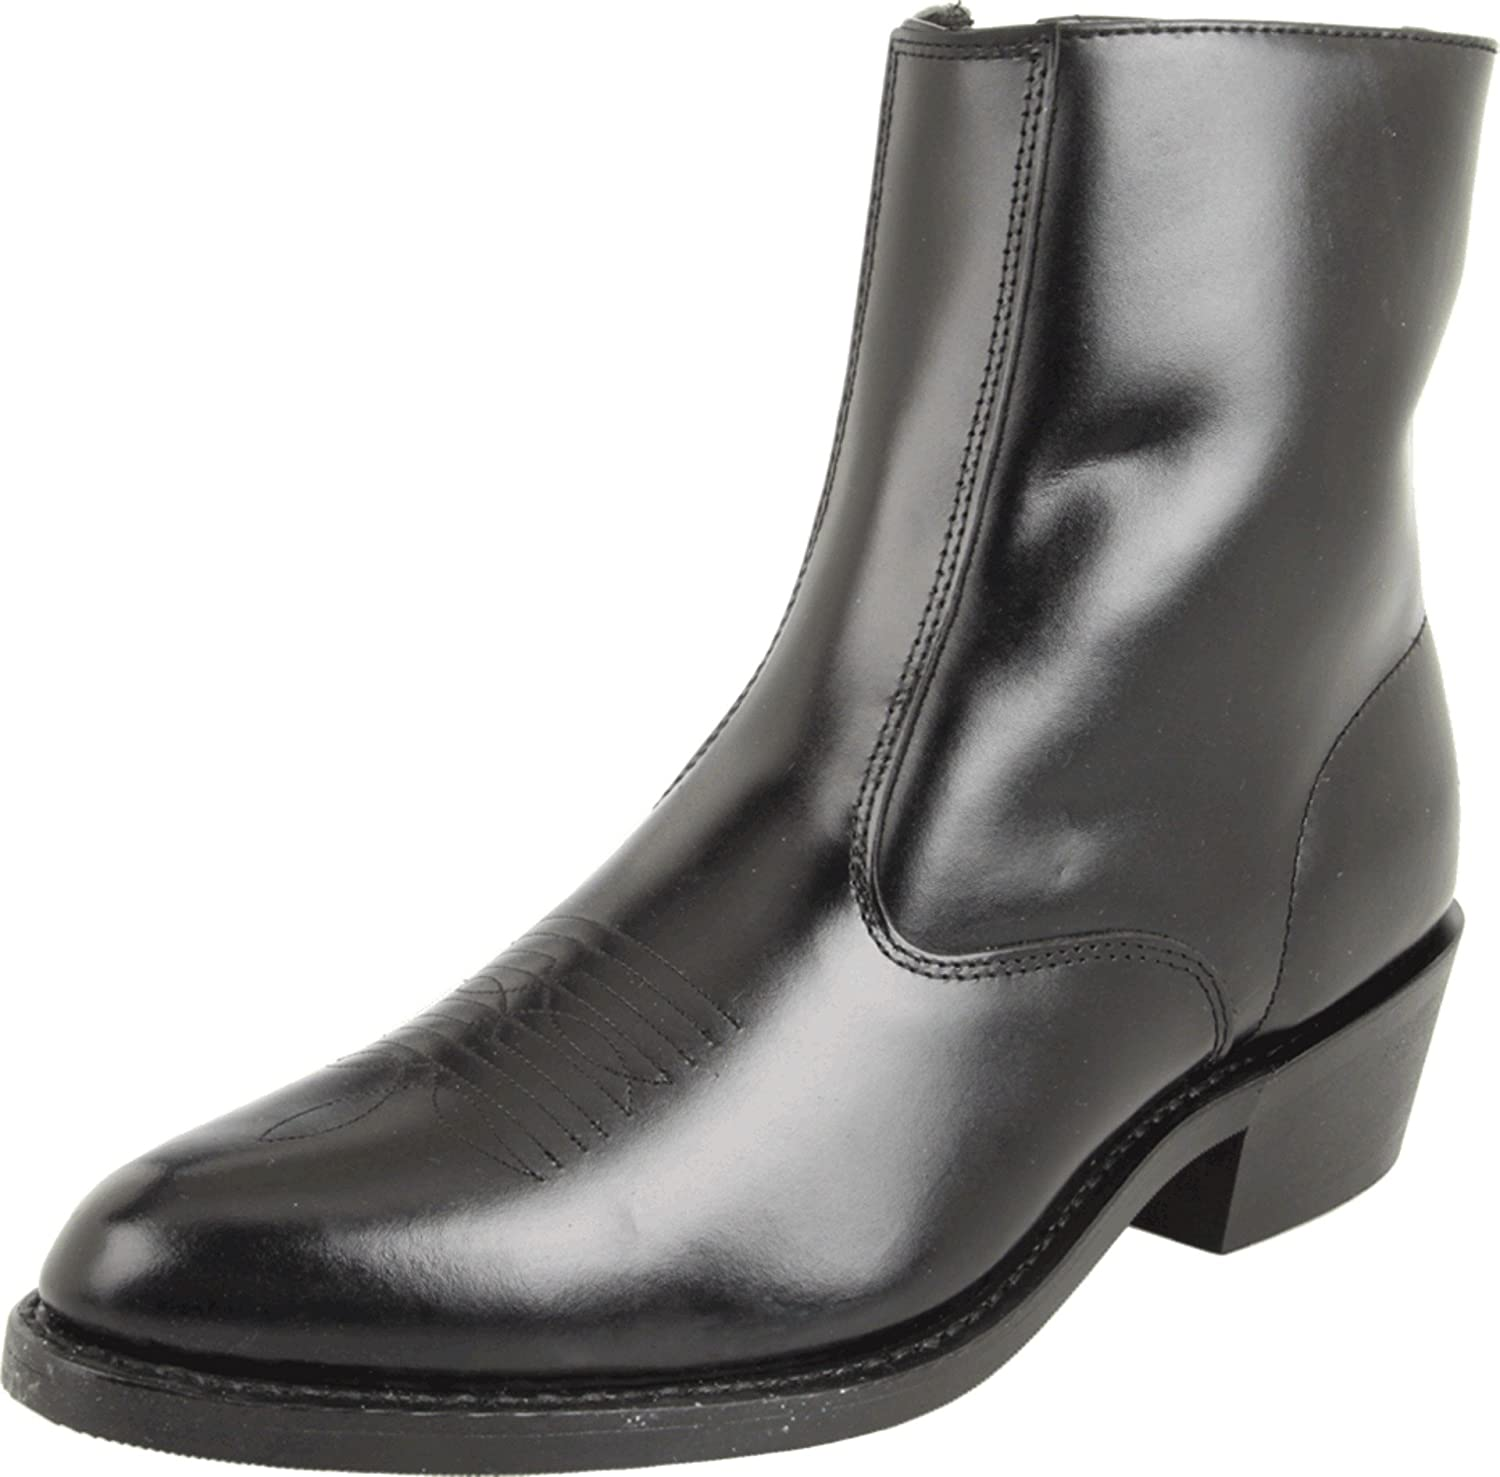 Laredo Men's Long Haul Boot US|Black B005S1BJXI 15 EE US|Black Boot 66e3f3